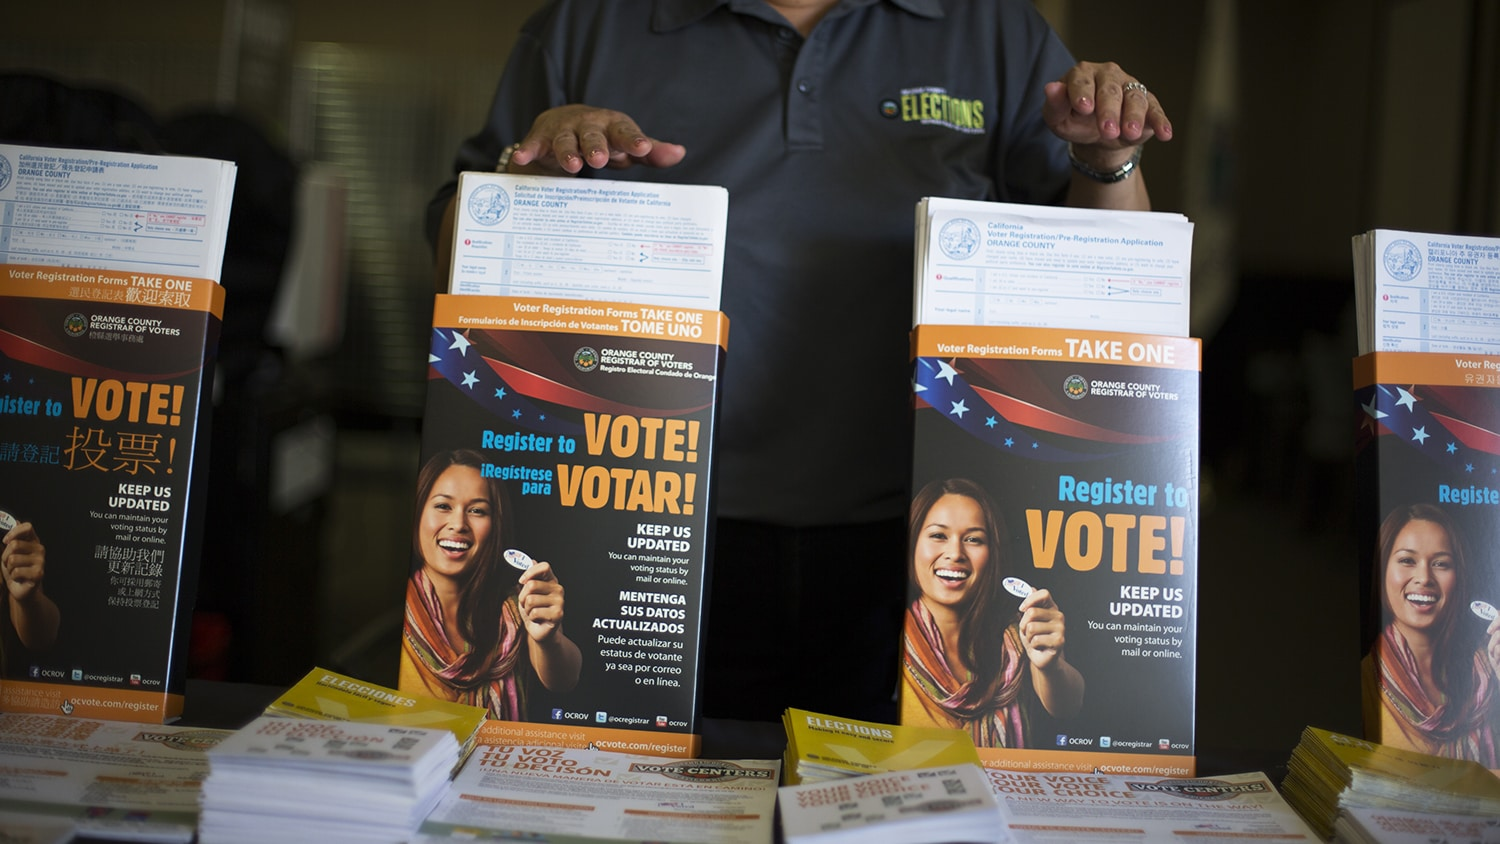 Orange County Registrar of Voters Put Out Faulty Farsi Translation in Voter Guides, Agency Moves to Fix